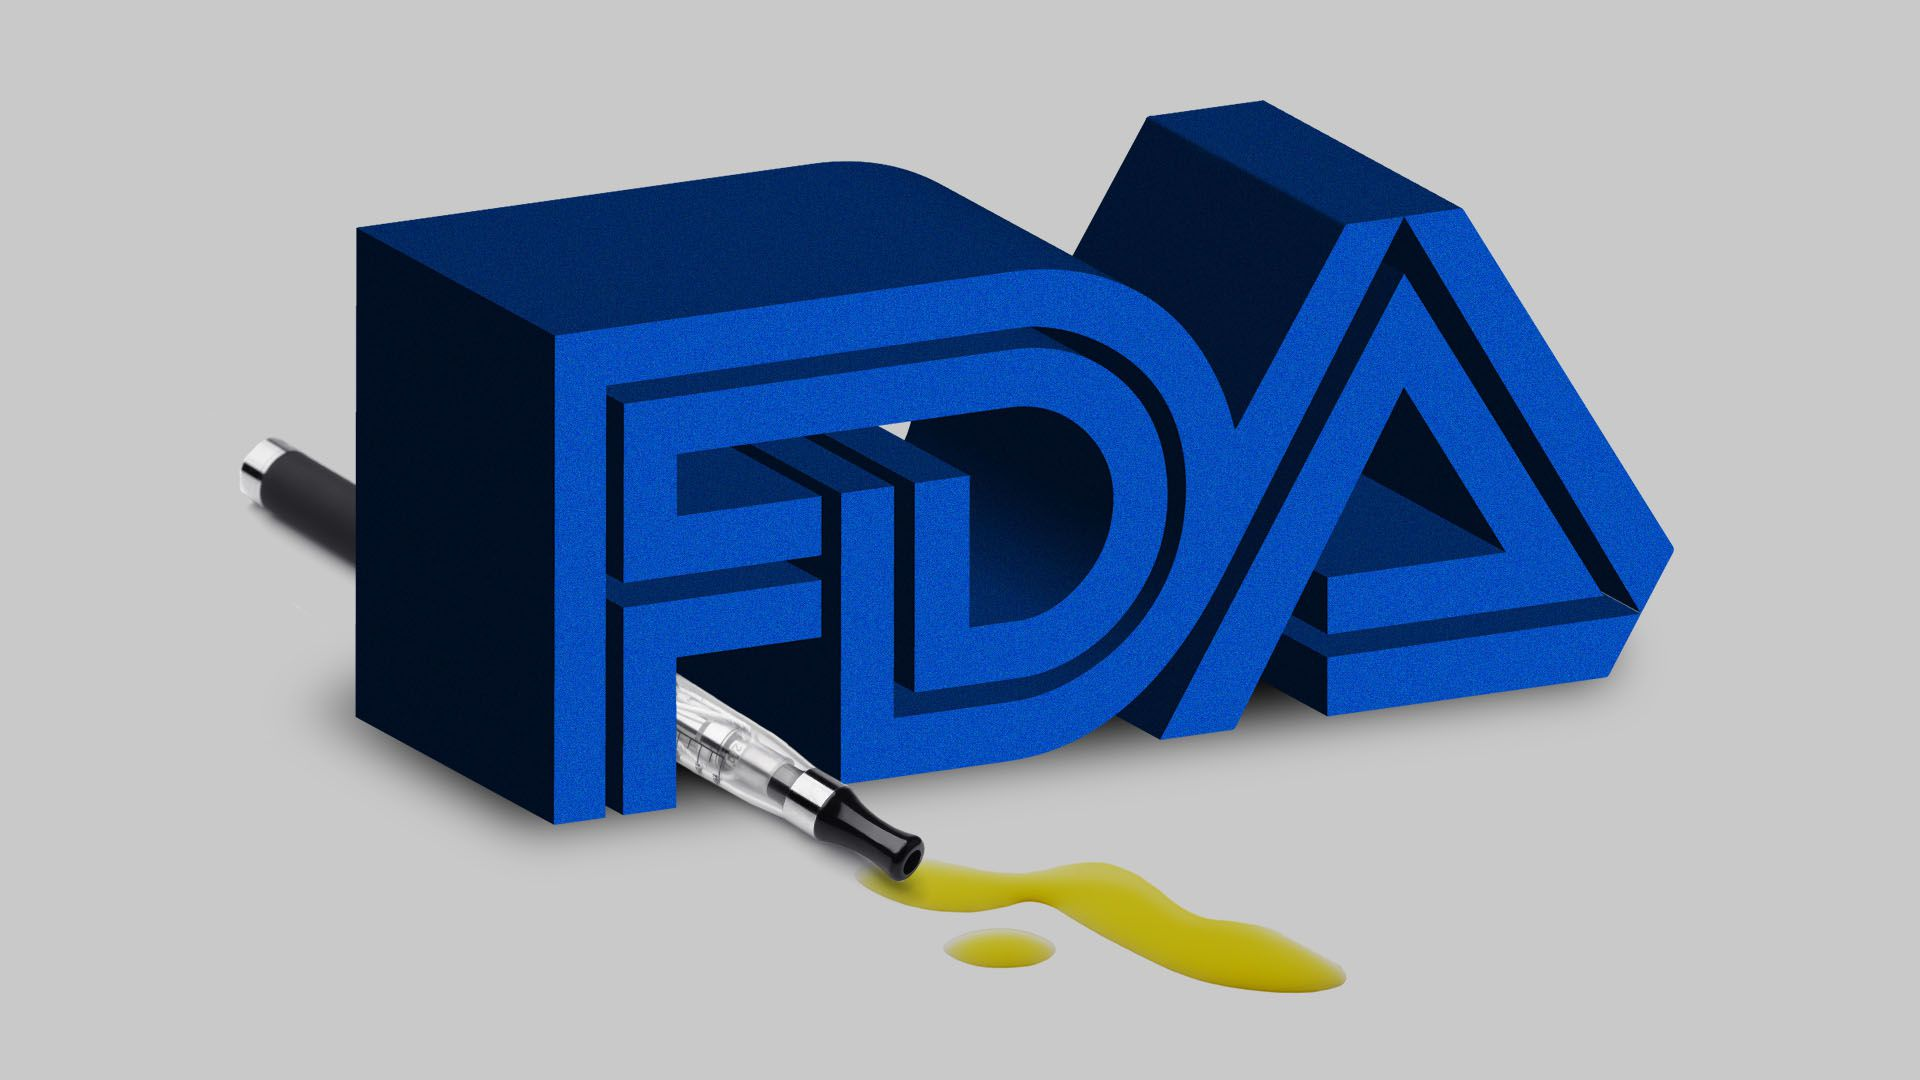 Fda Advisers Ban Use Of Behavior >> A Surge In Youth Vaping Is Driving The Fda S Crackdown Axios